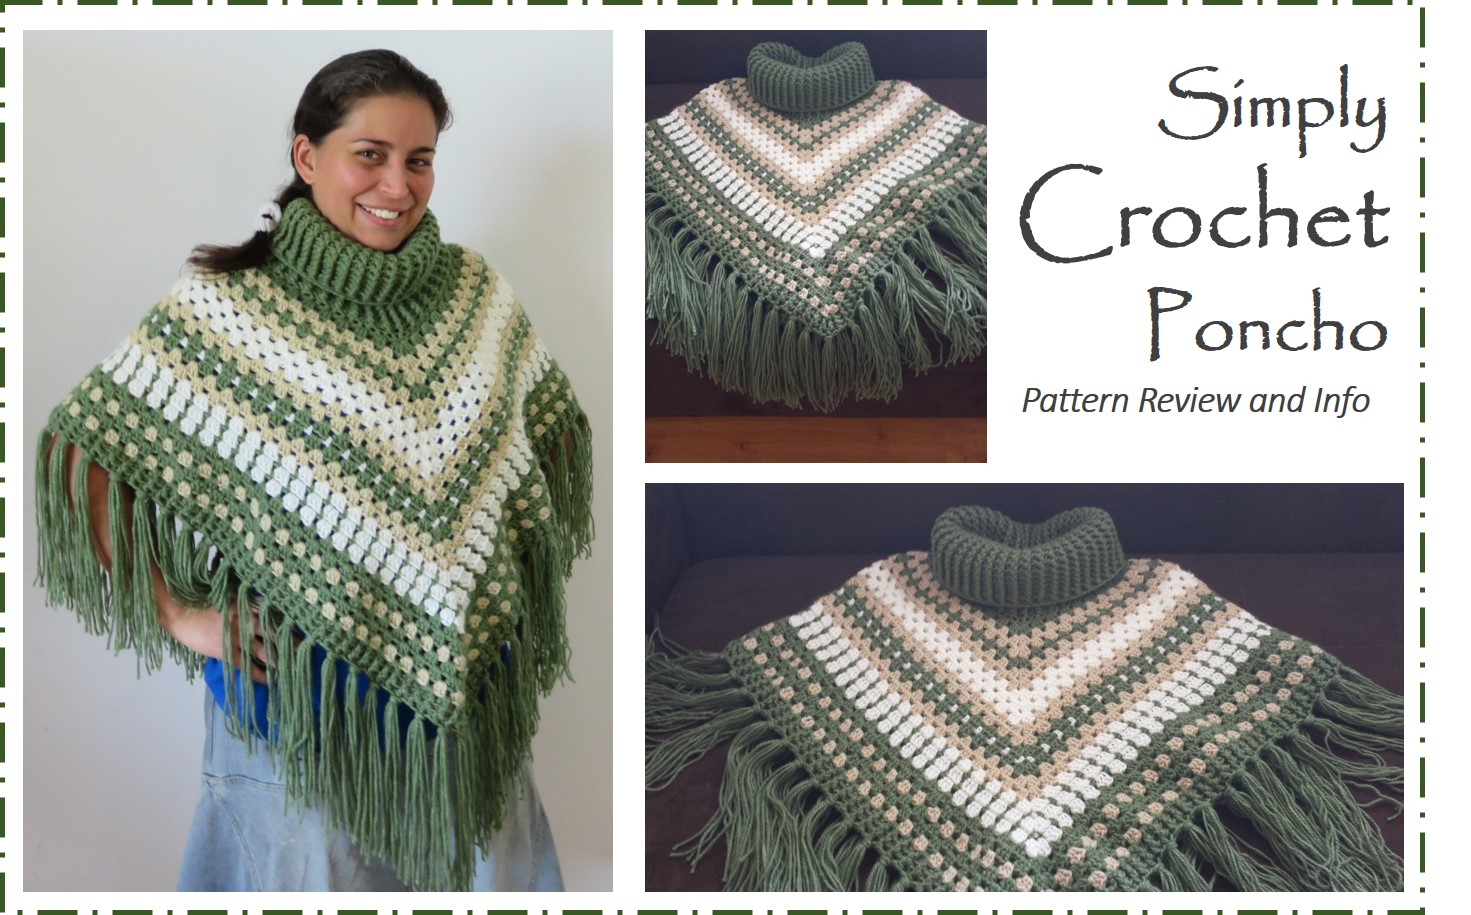 Free Crochet Patterns For Cowl Neck Poncho : Jungling the Odds: Simply Crochet Cowl Neck Poncho Pattern ...